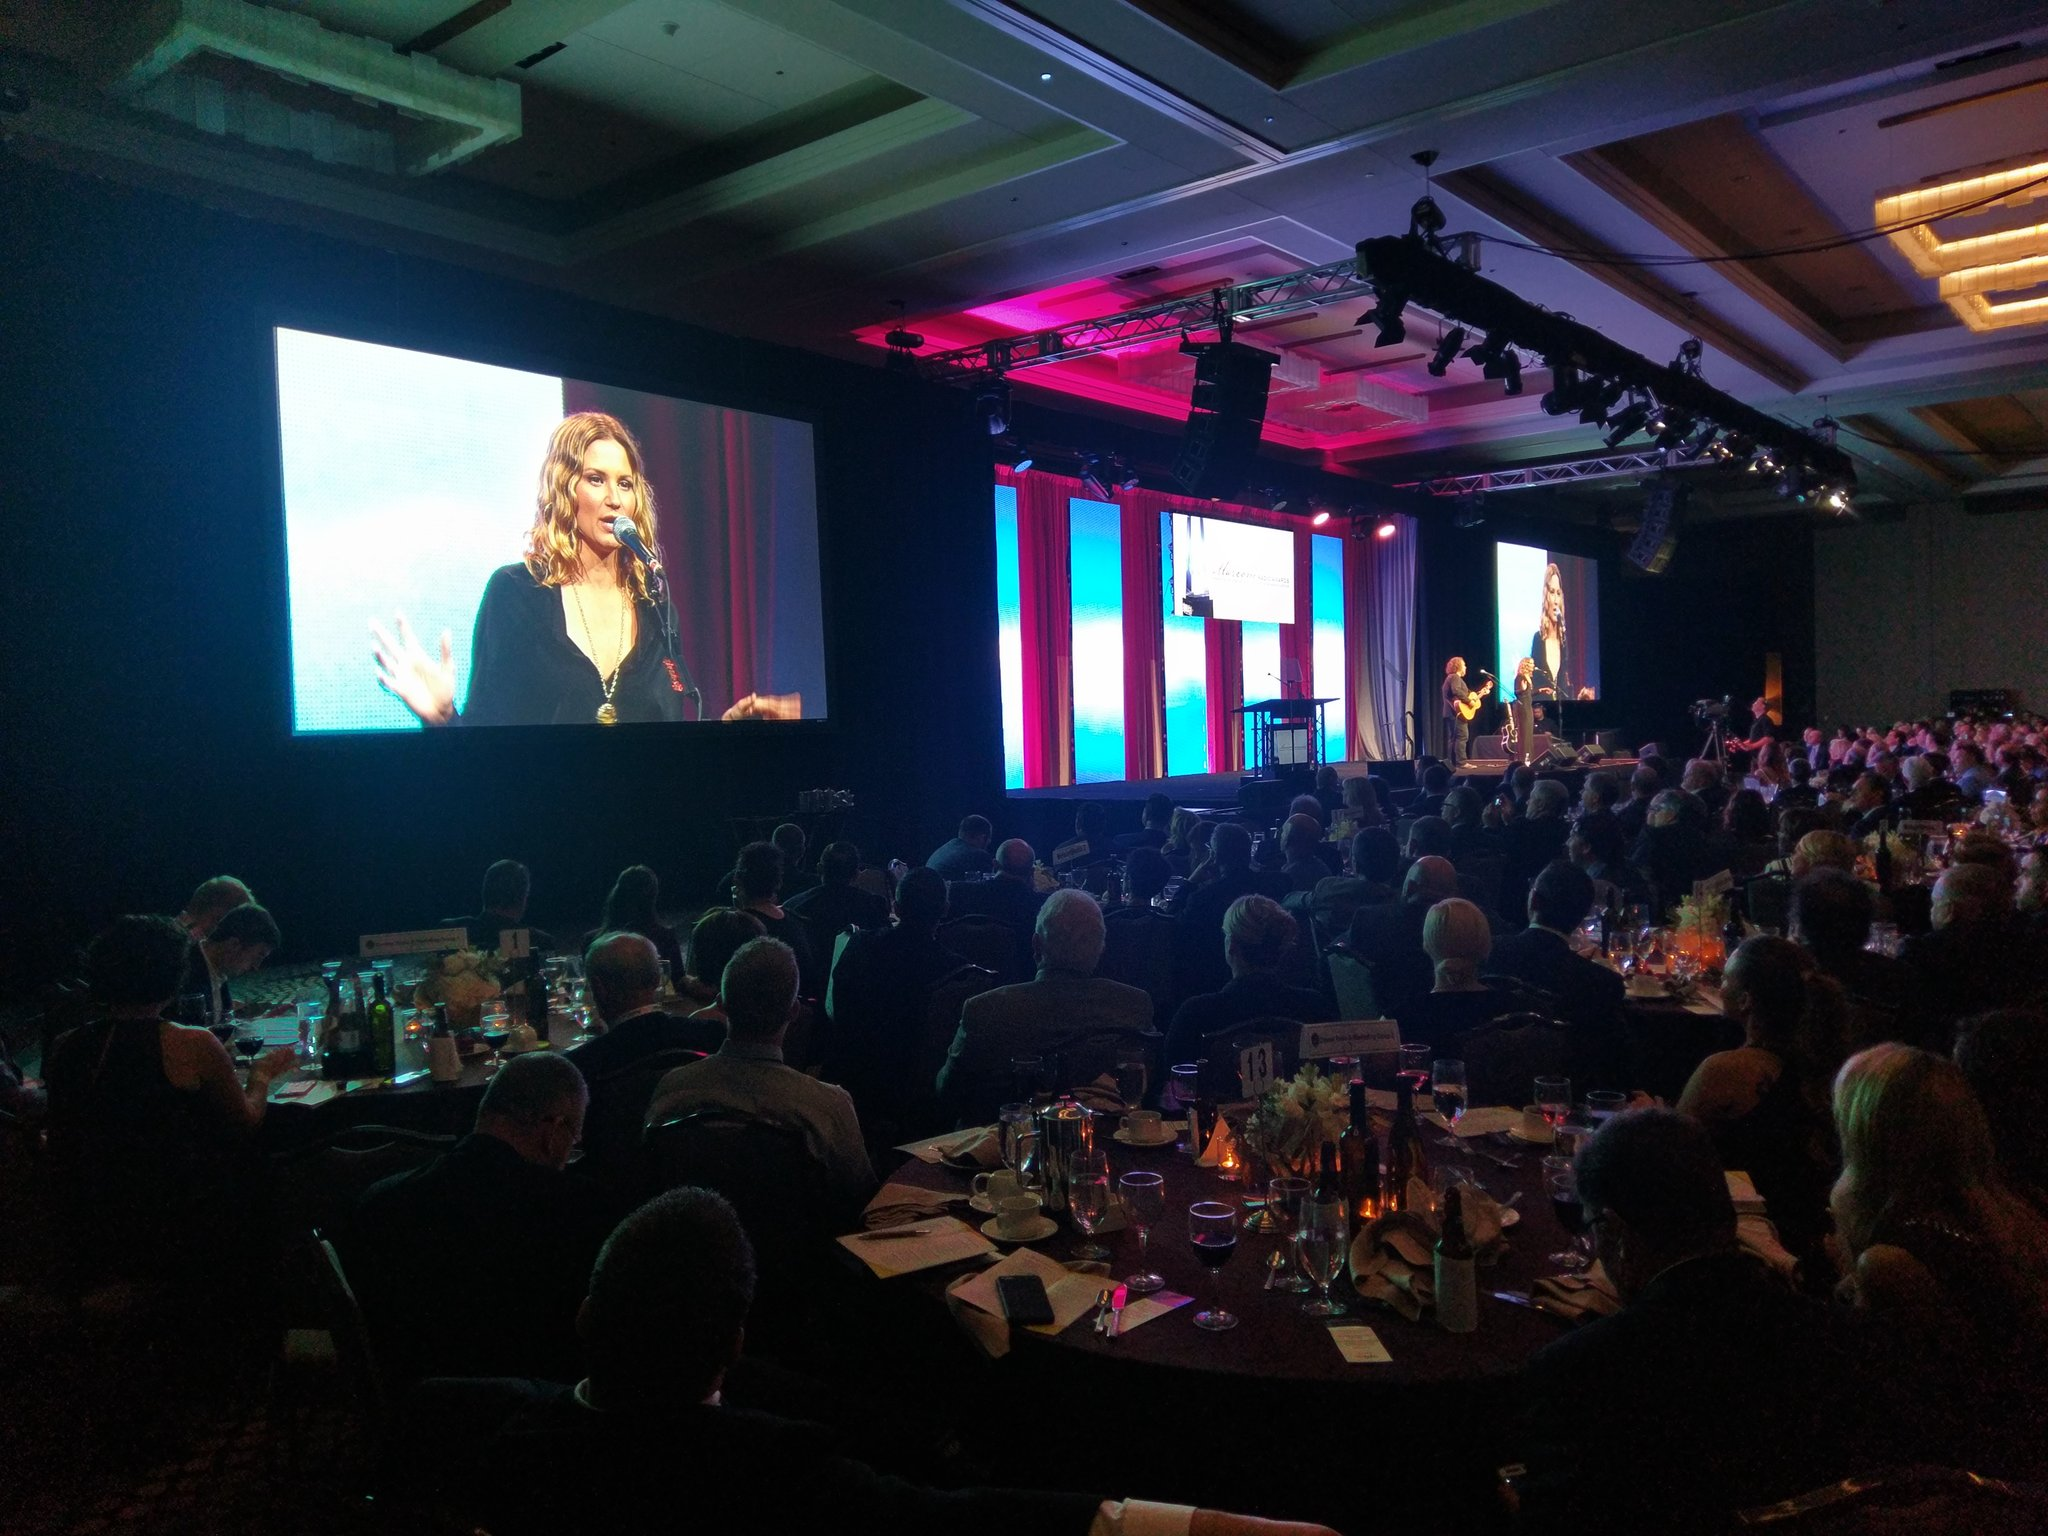 ".@JenniferNettles at #RadioShow2016: ""Radio is a connector."" https://t.co/W6dT4VeO8T"